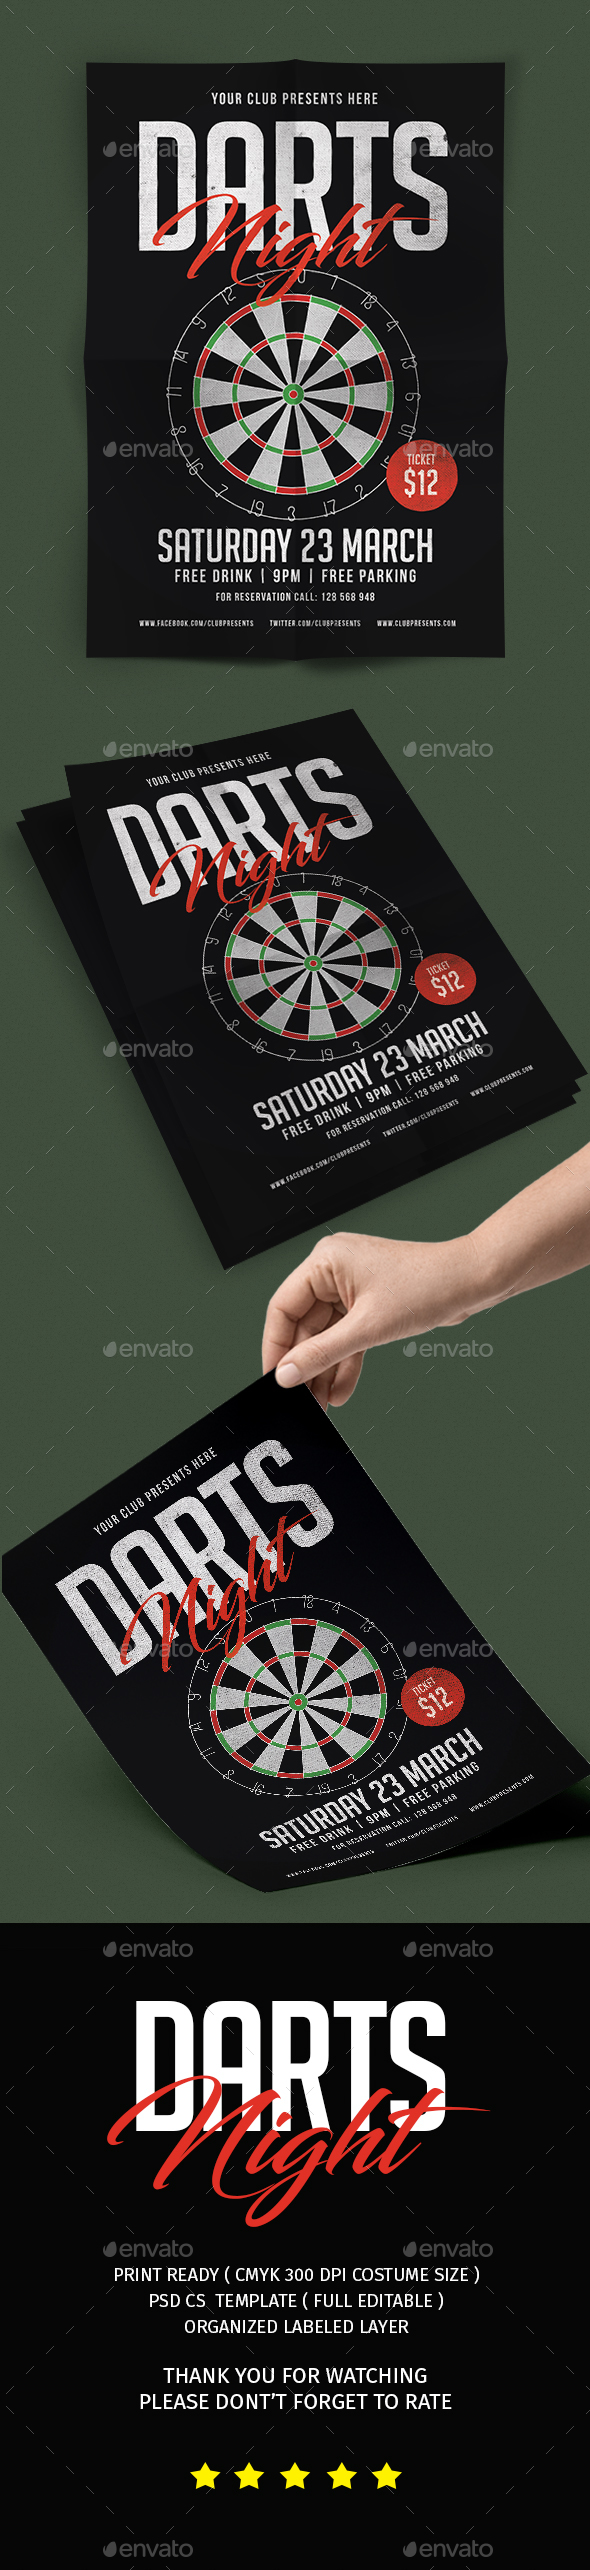 Darts Night Flyer - Flyers Print Templates